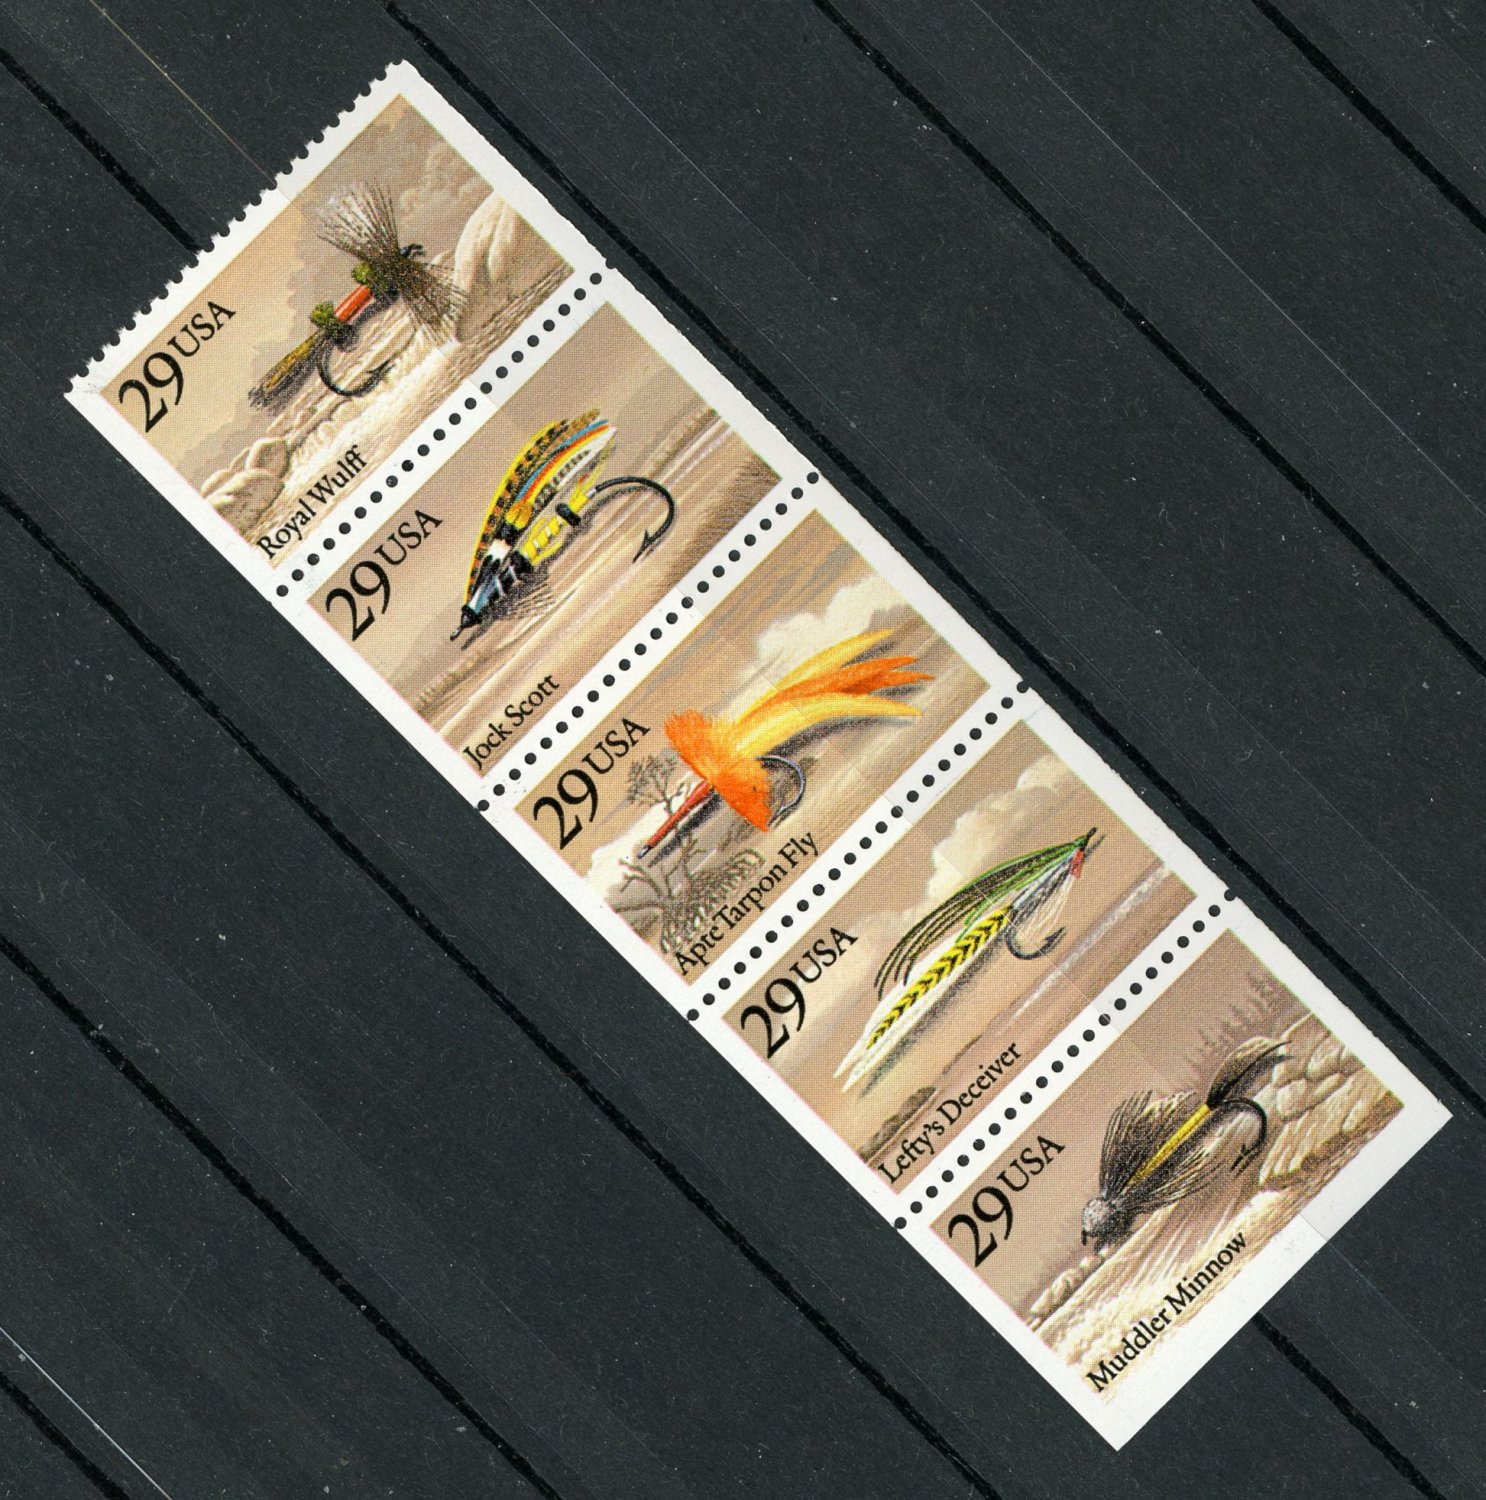 Fishing Flies MNH Strip of 5 Stamps Ex-Booklet 1991 USA #2549a